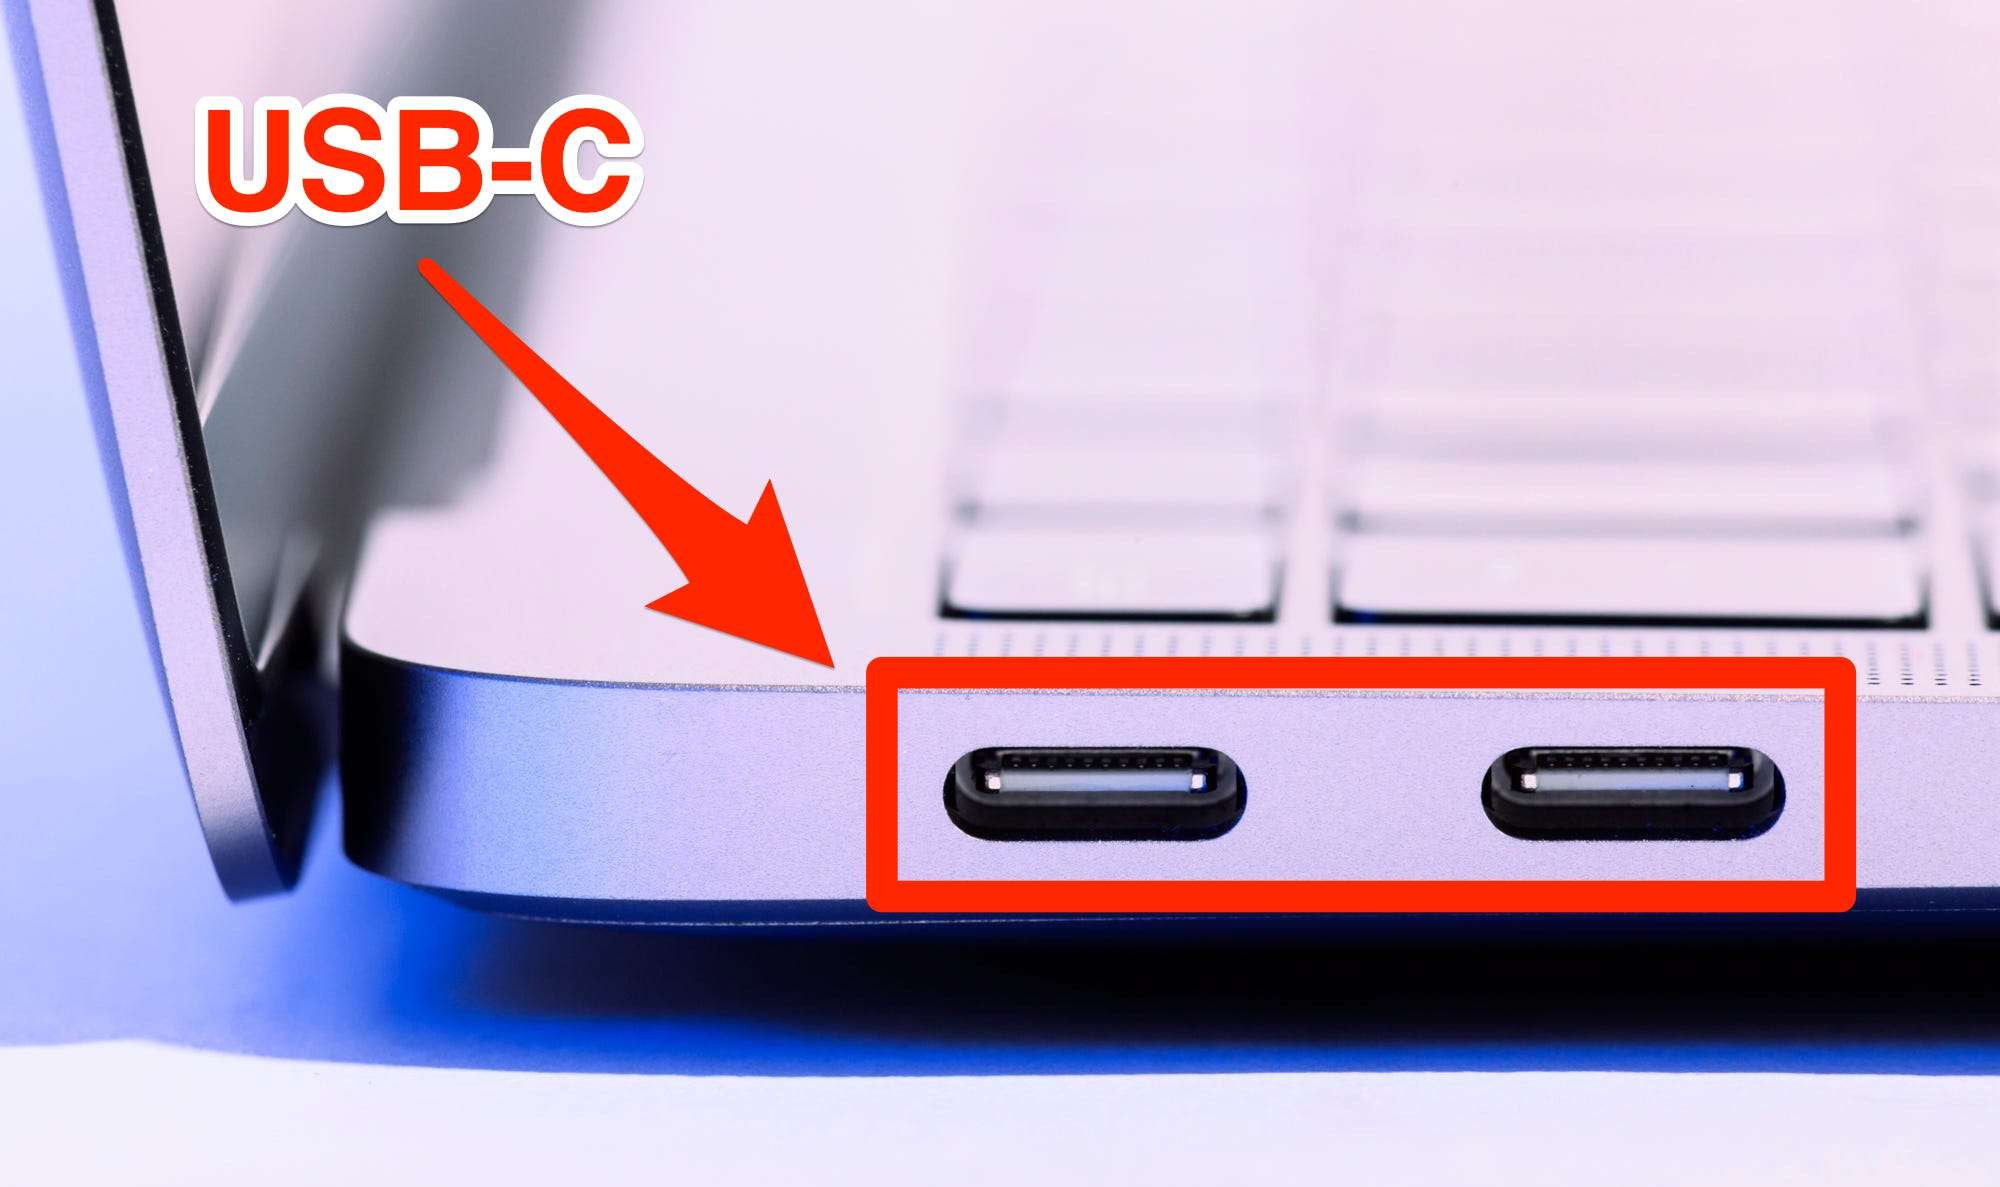 Usb C Does Usb-c Charge Faster Than Usb? Here's What You Need To Know